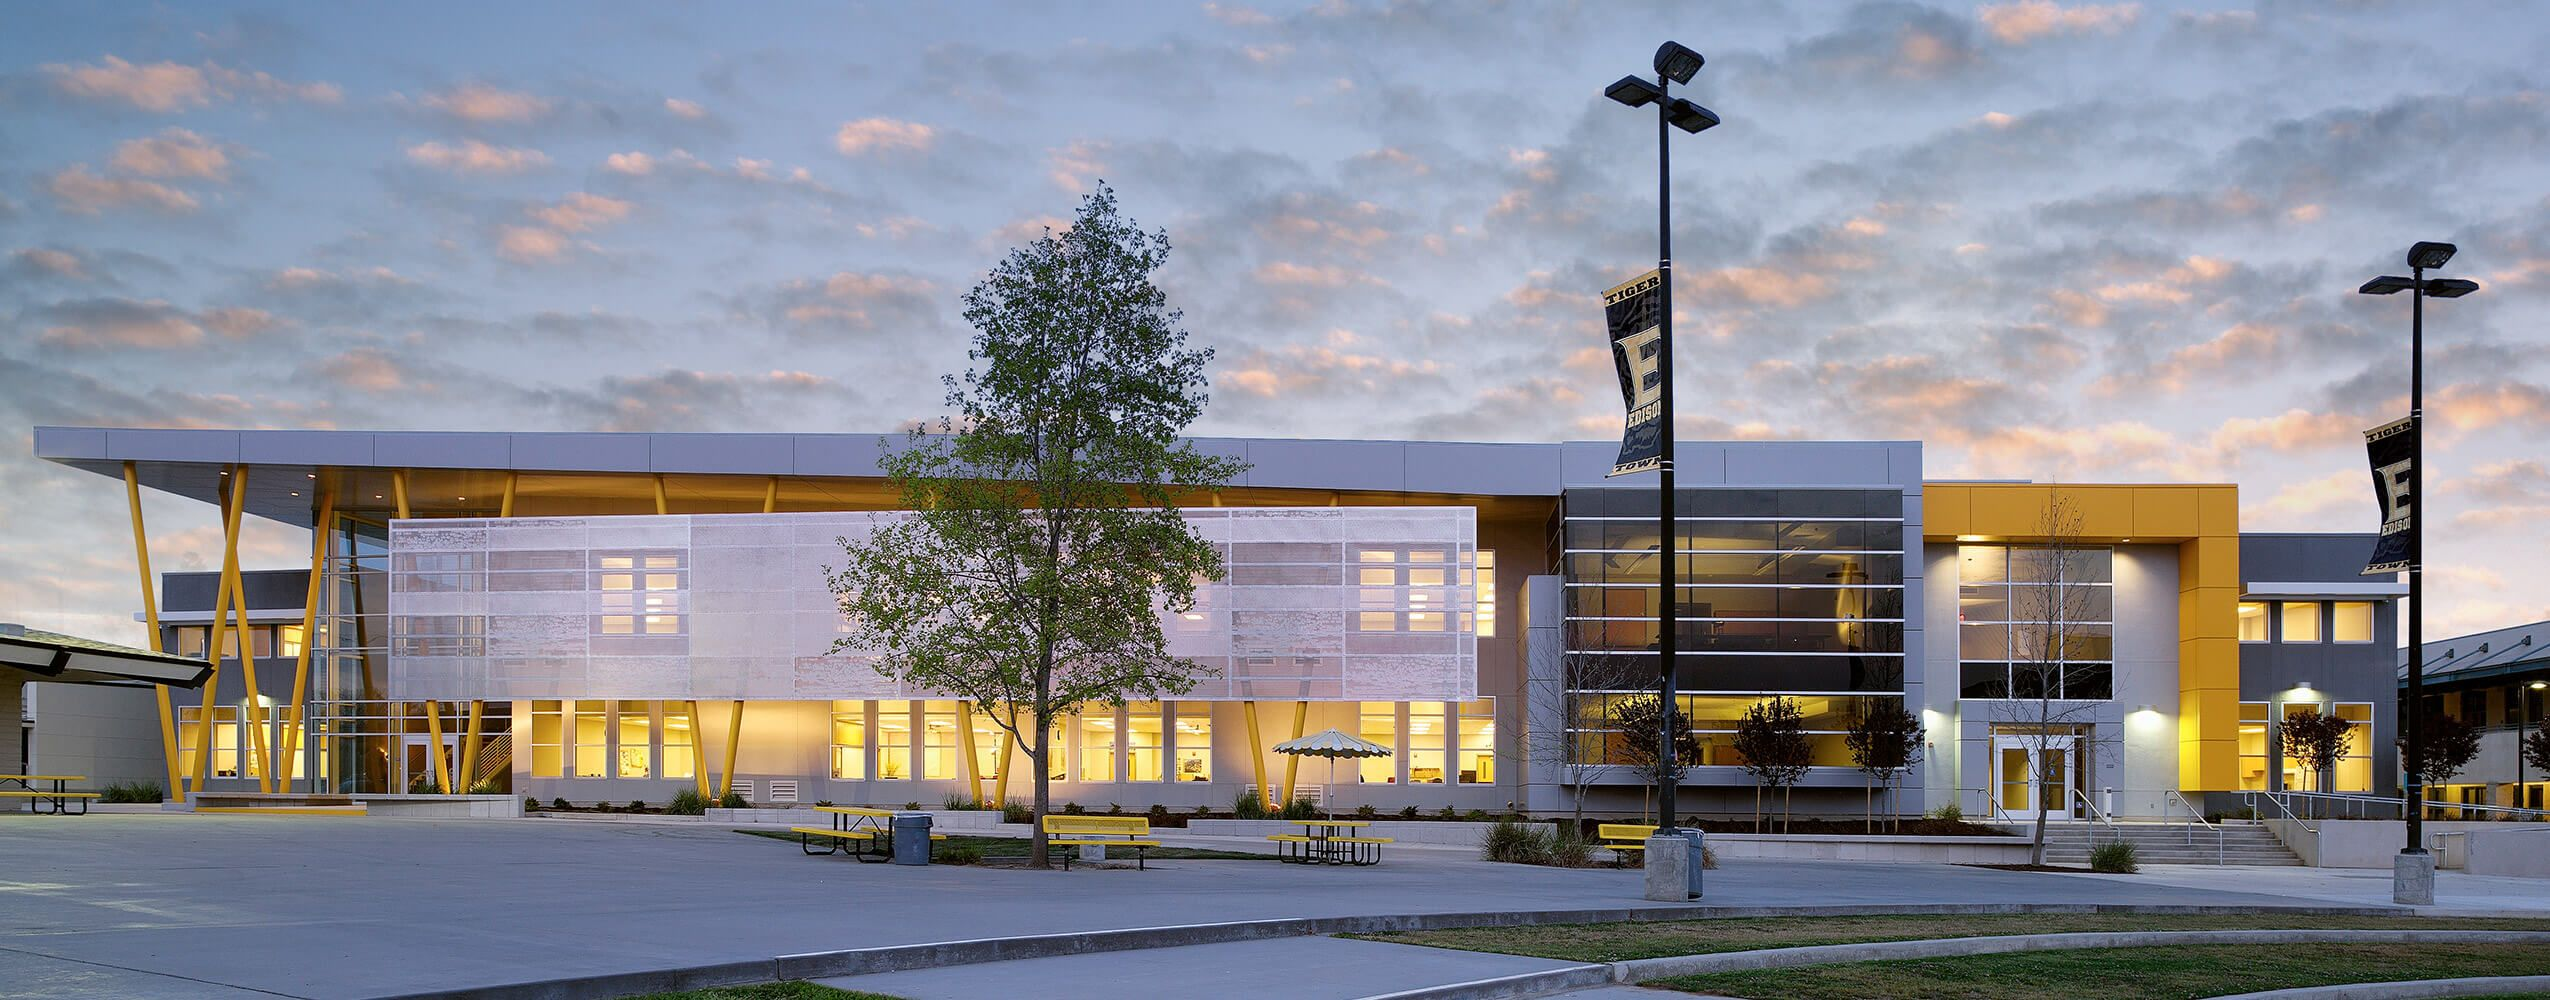 Lovely The Edison High School Academic Building By Darden Architects   Fresno,  California Ideas